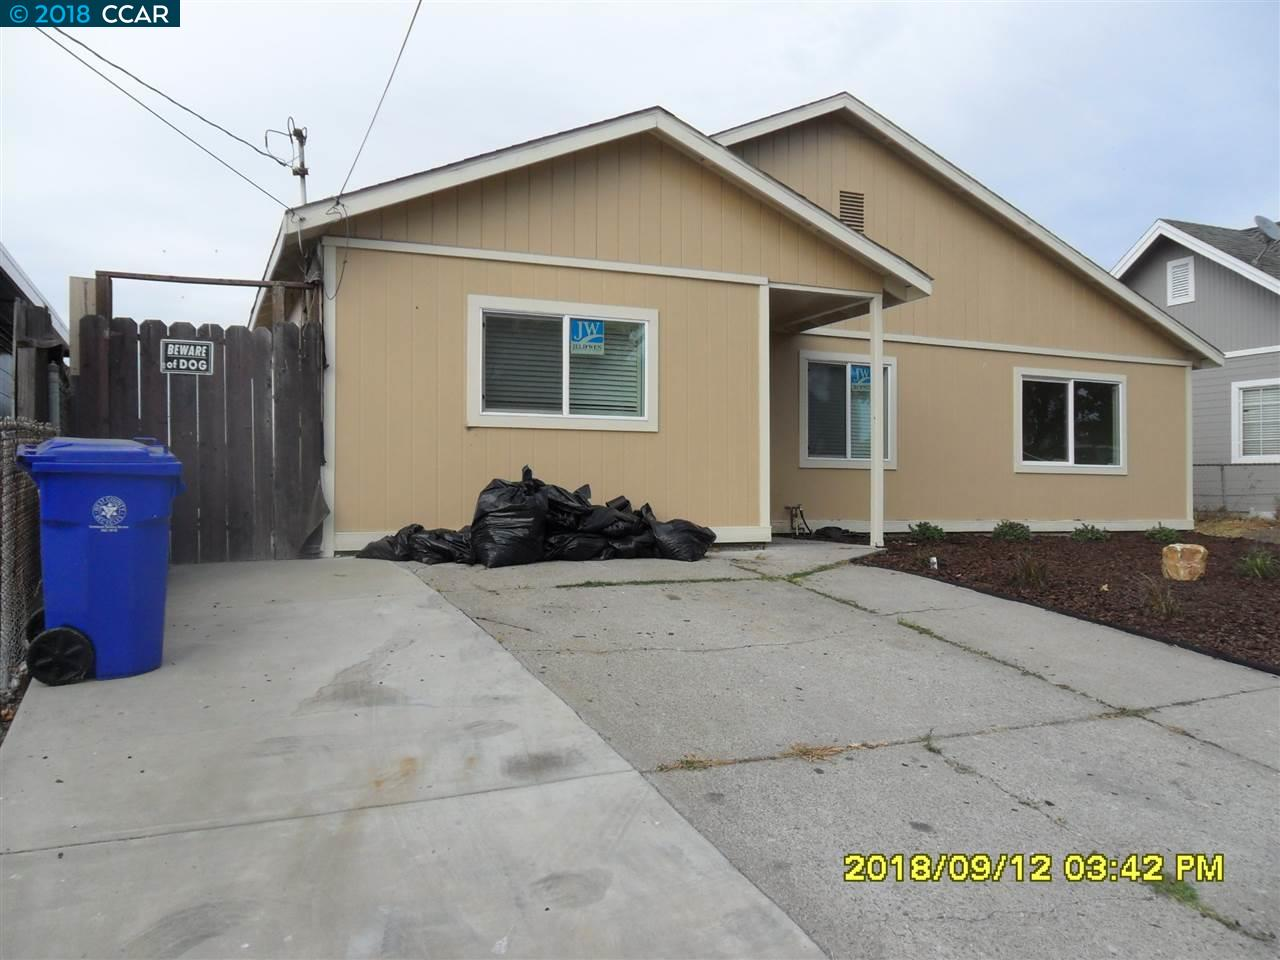 709 HARRISON DR, RICHMOND, CA 94806